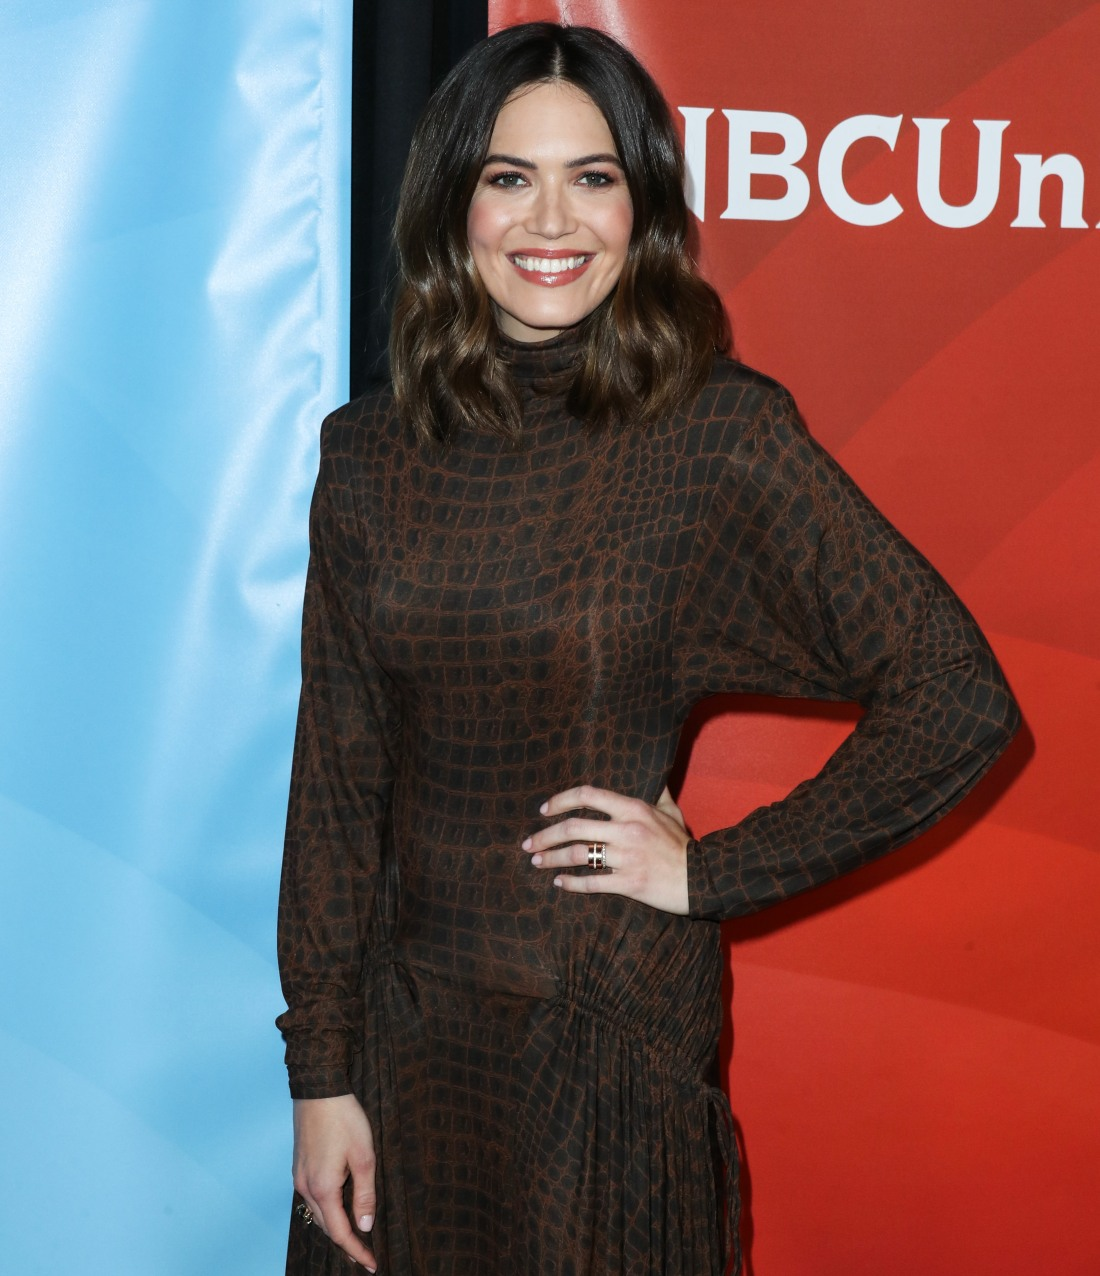 Mandy Moore arrives at the 2020 NBCUniversal Winter TCA Press Tour held at The Langham Huntington Hotel on January 11, 2020 in Pasadena, Los Angeles, California, United States.